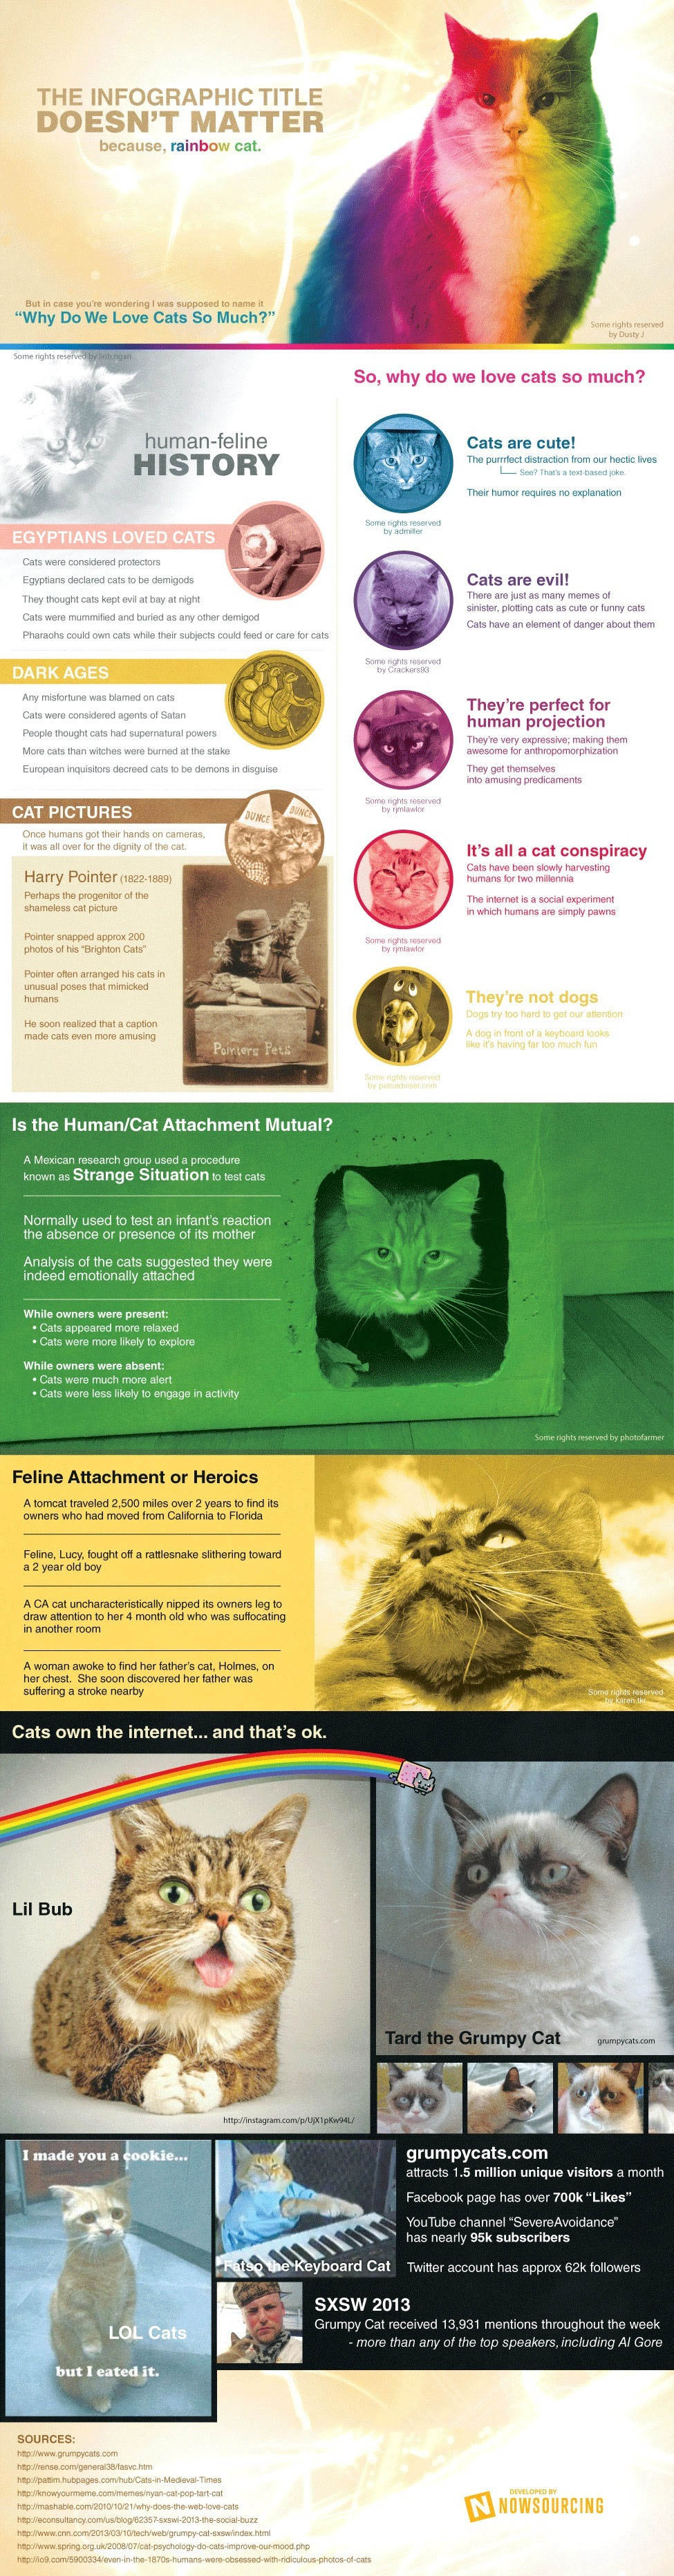 Why Do We Love Cats So Much? - infographic